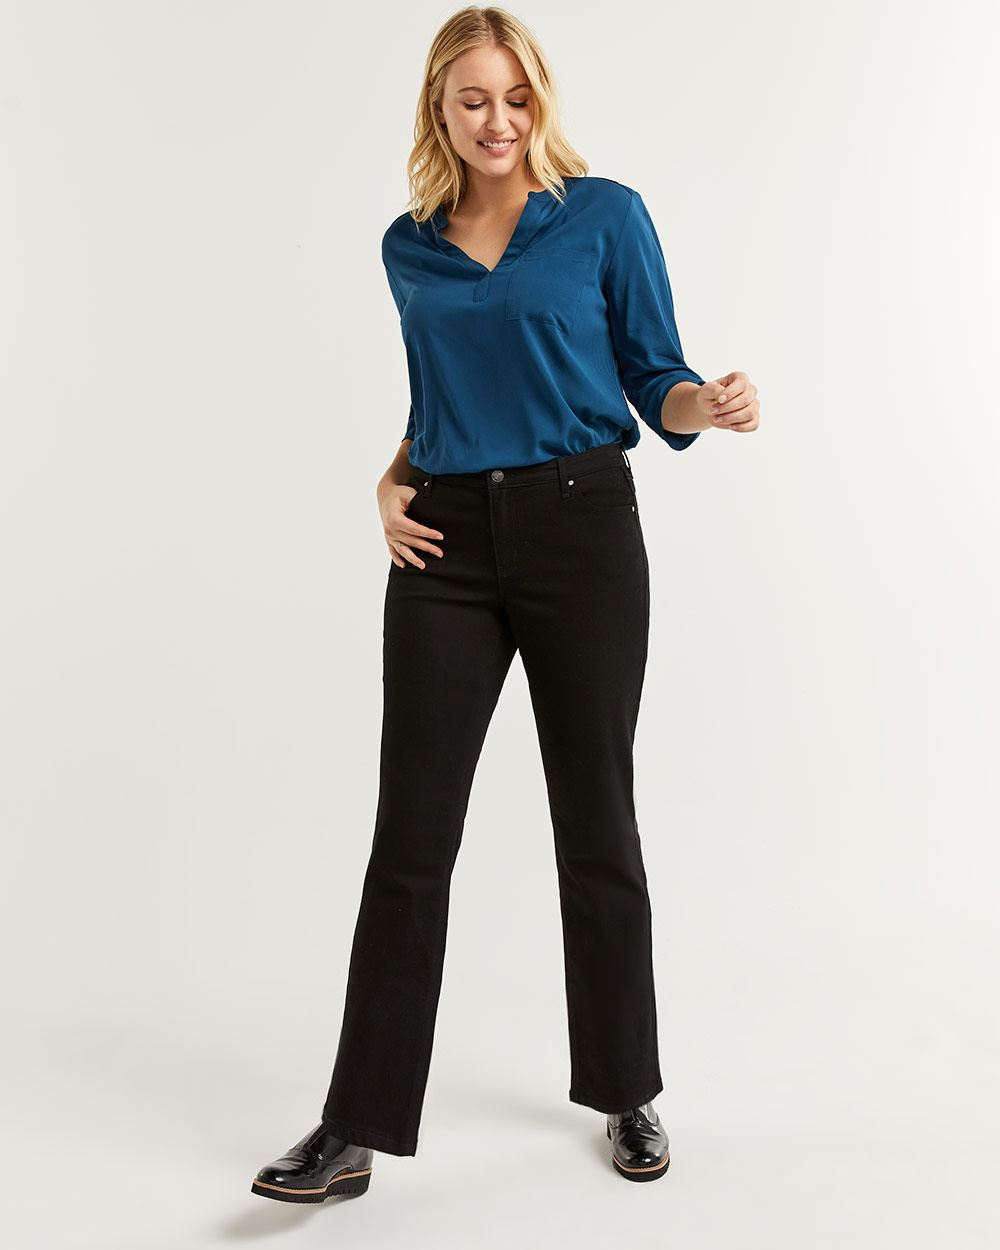 Black Straight Leg Jeans The Insider